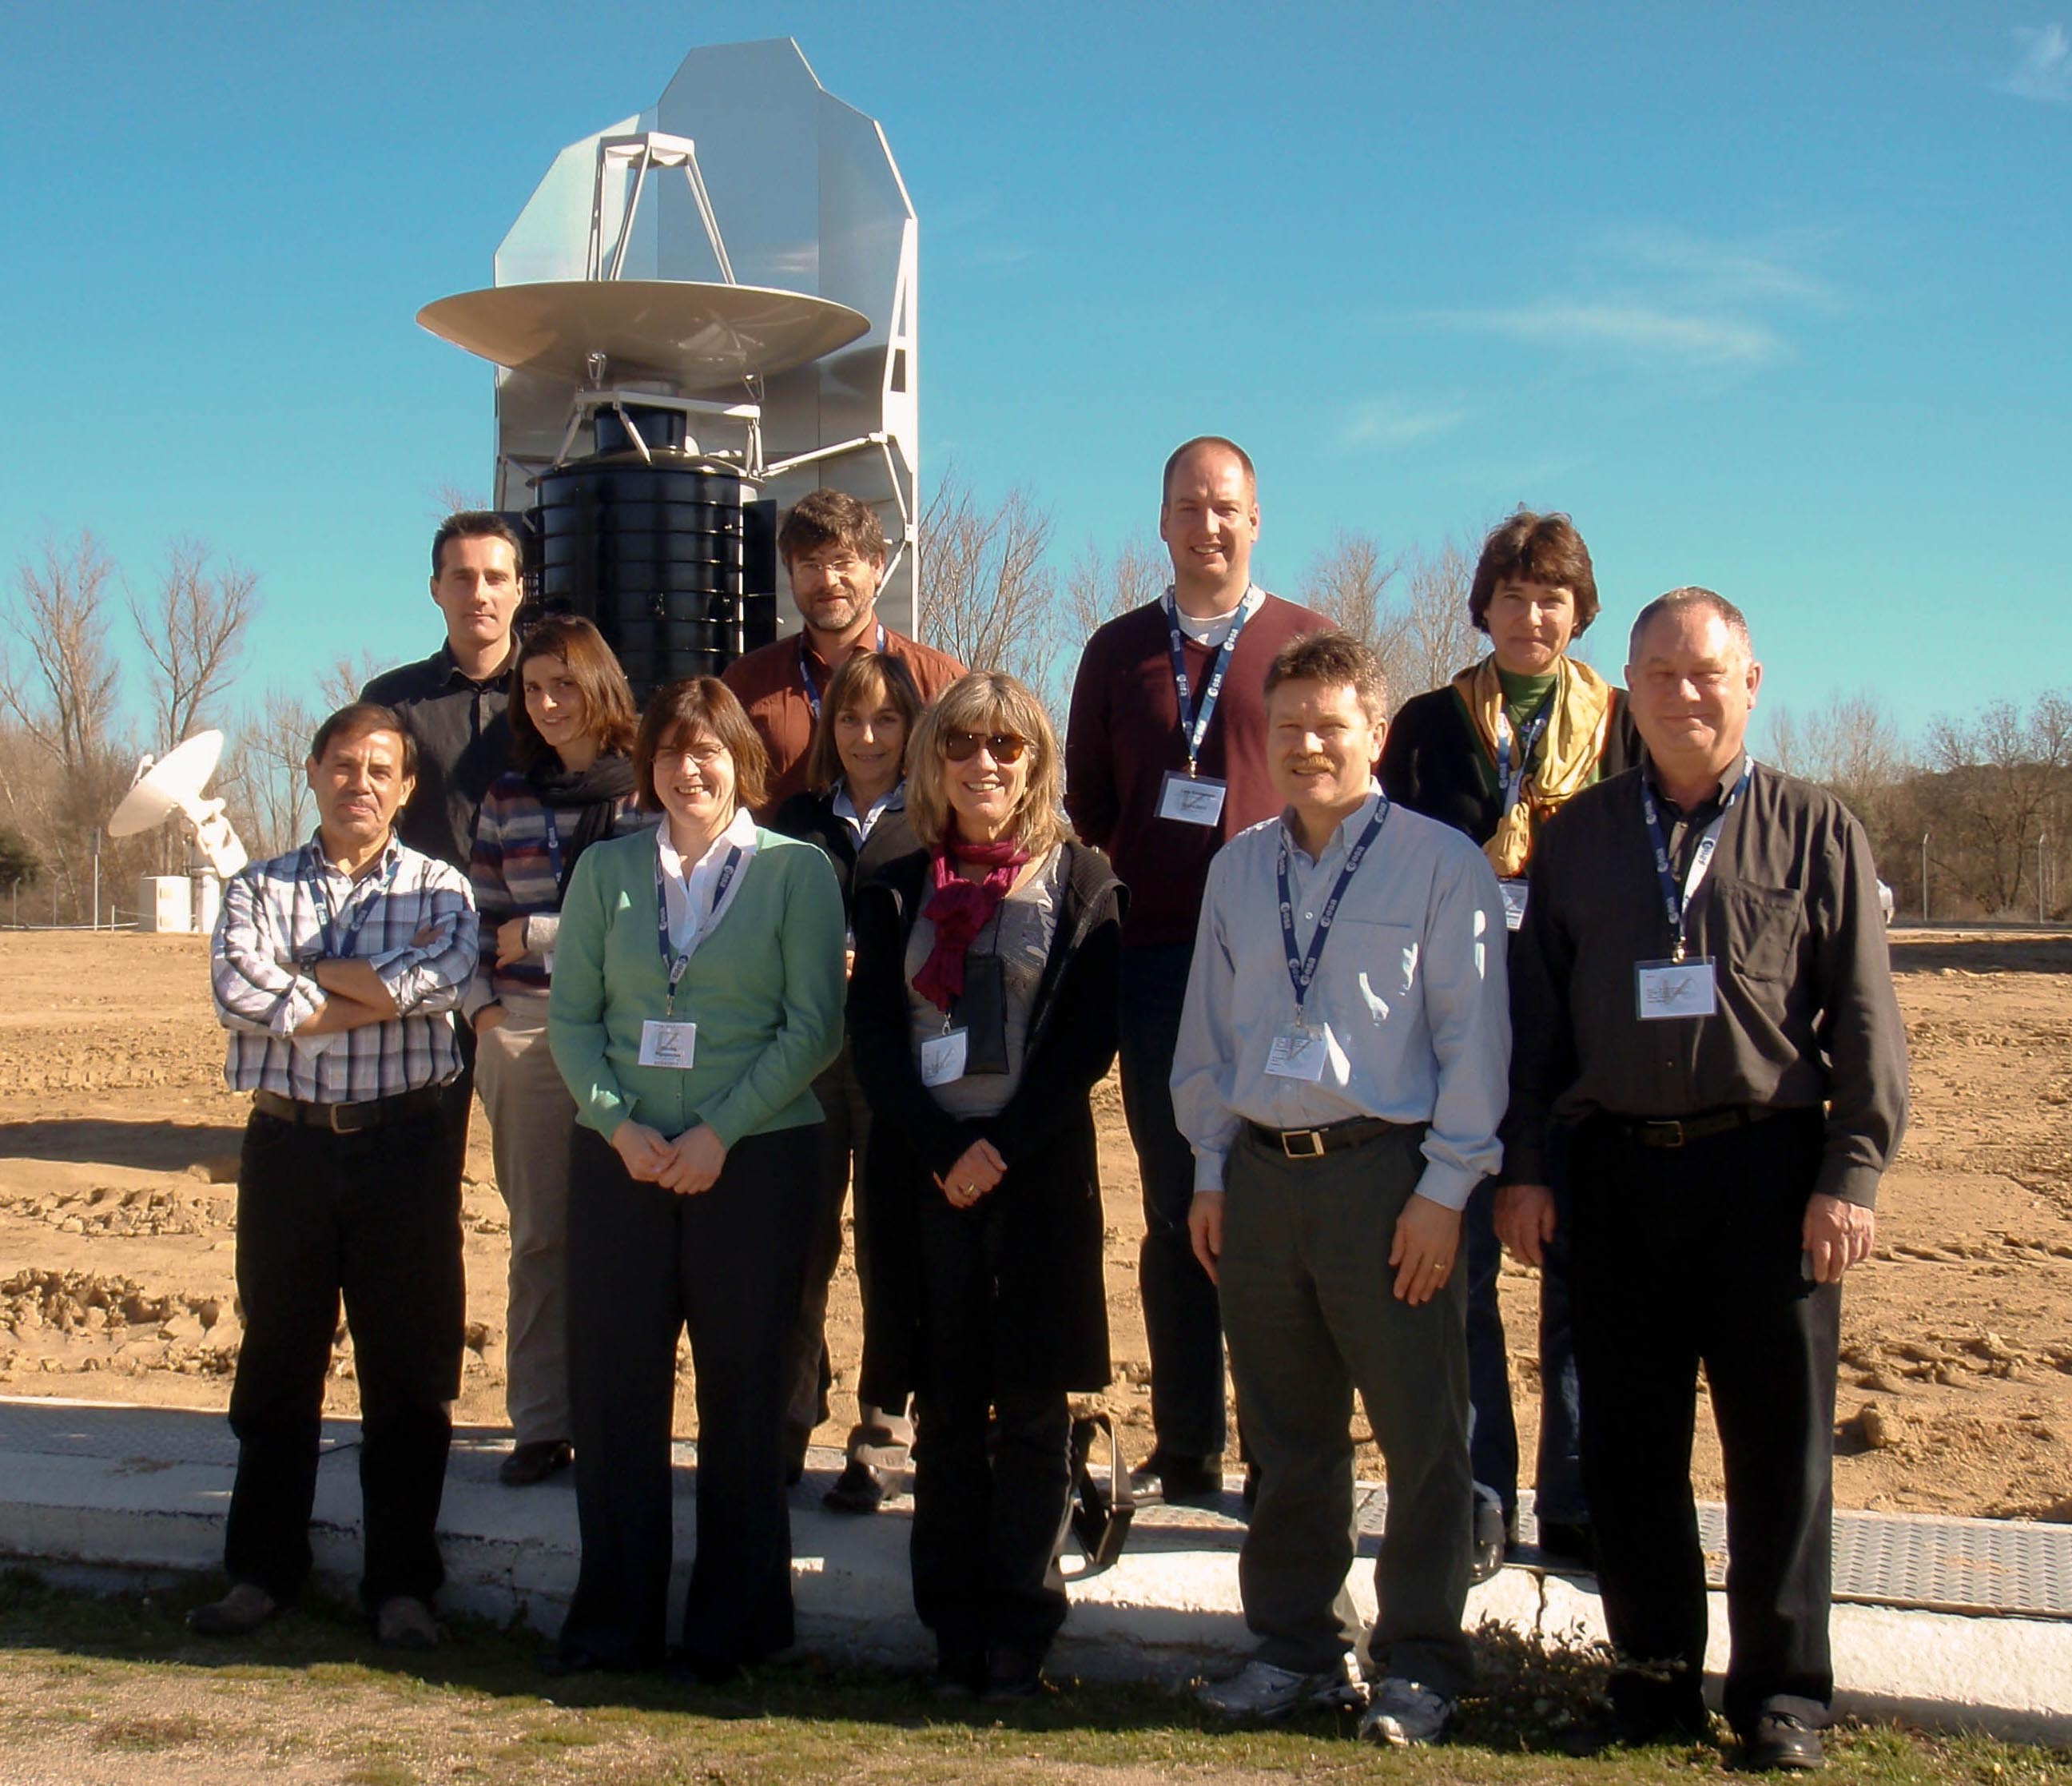 The HUG members in front of the Herschel scale model during the HUG#2 meeting held on 23-24 February 2011 at ESAC.